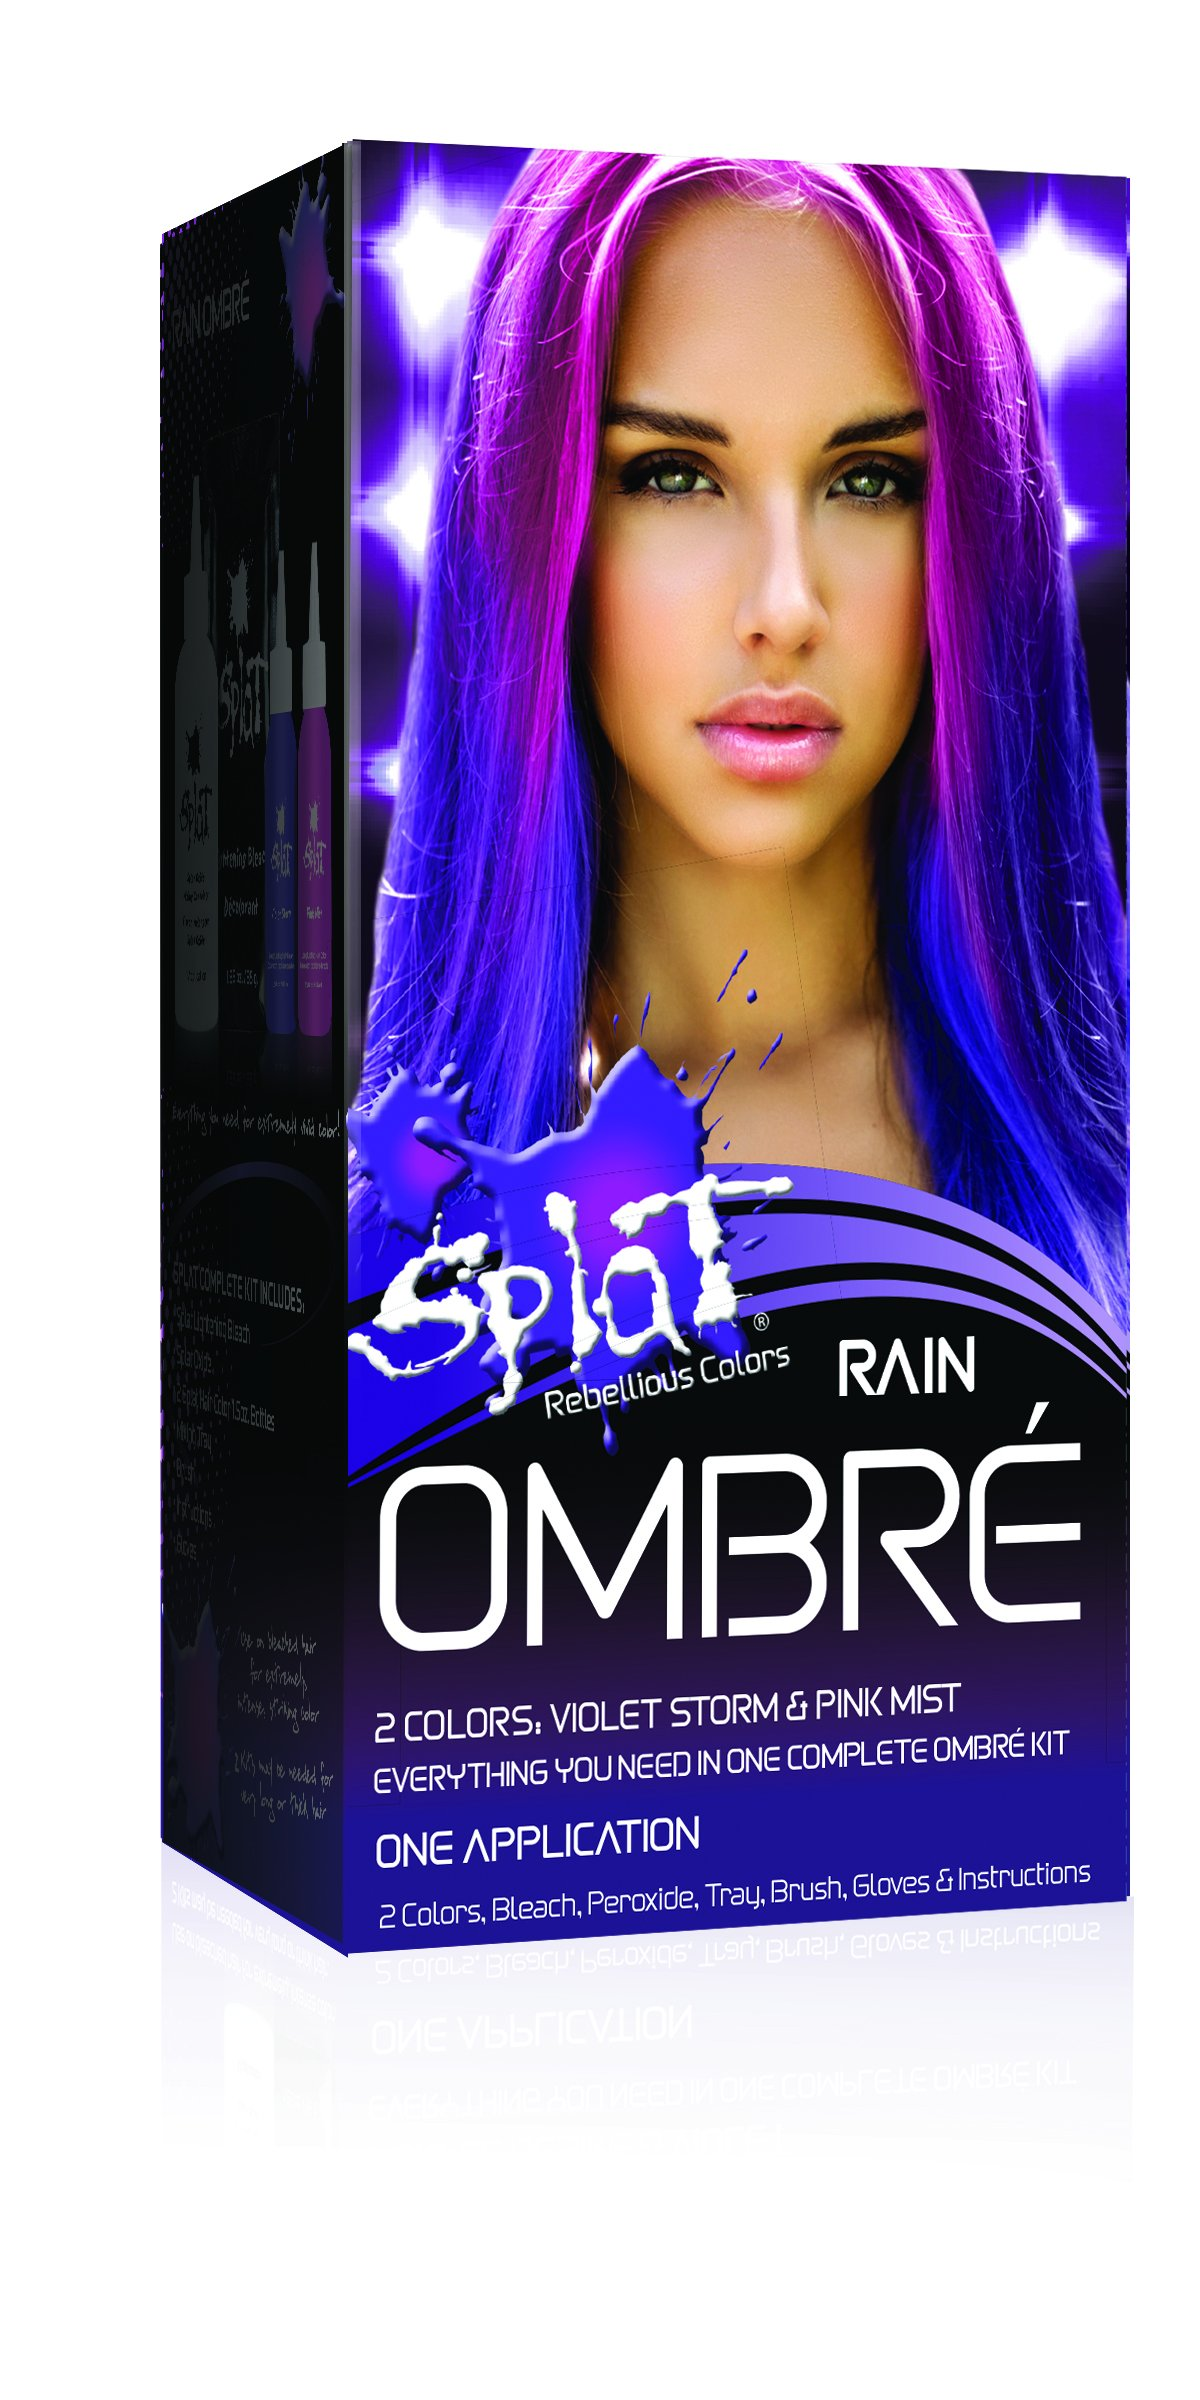 Amazon.com : 30 Wash Splat Kits (Ombre Ocean) : Beauty